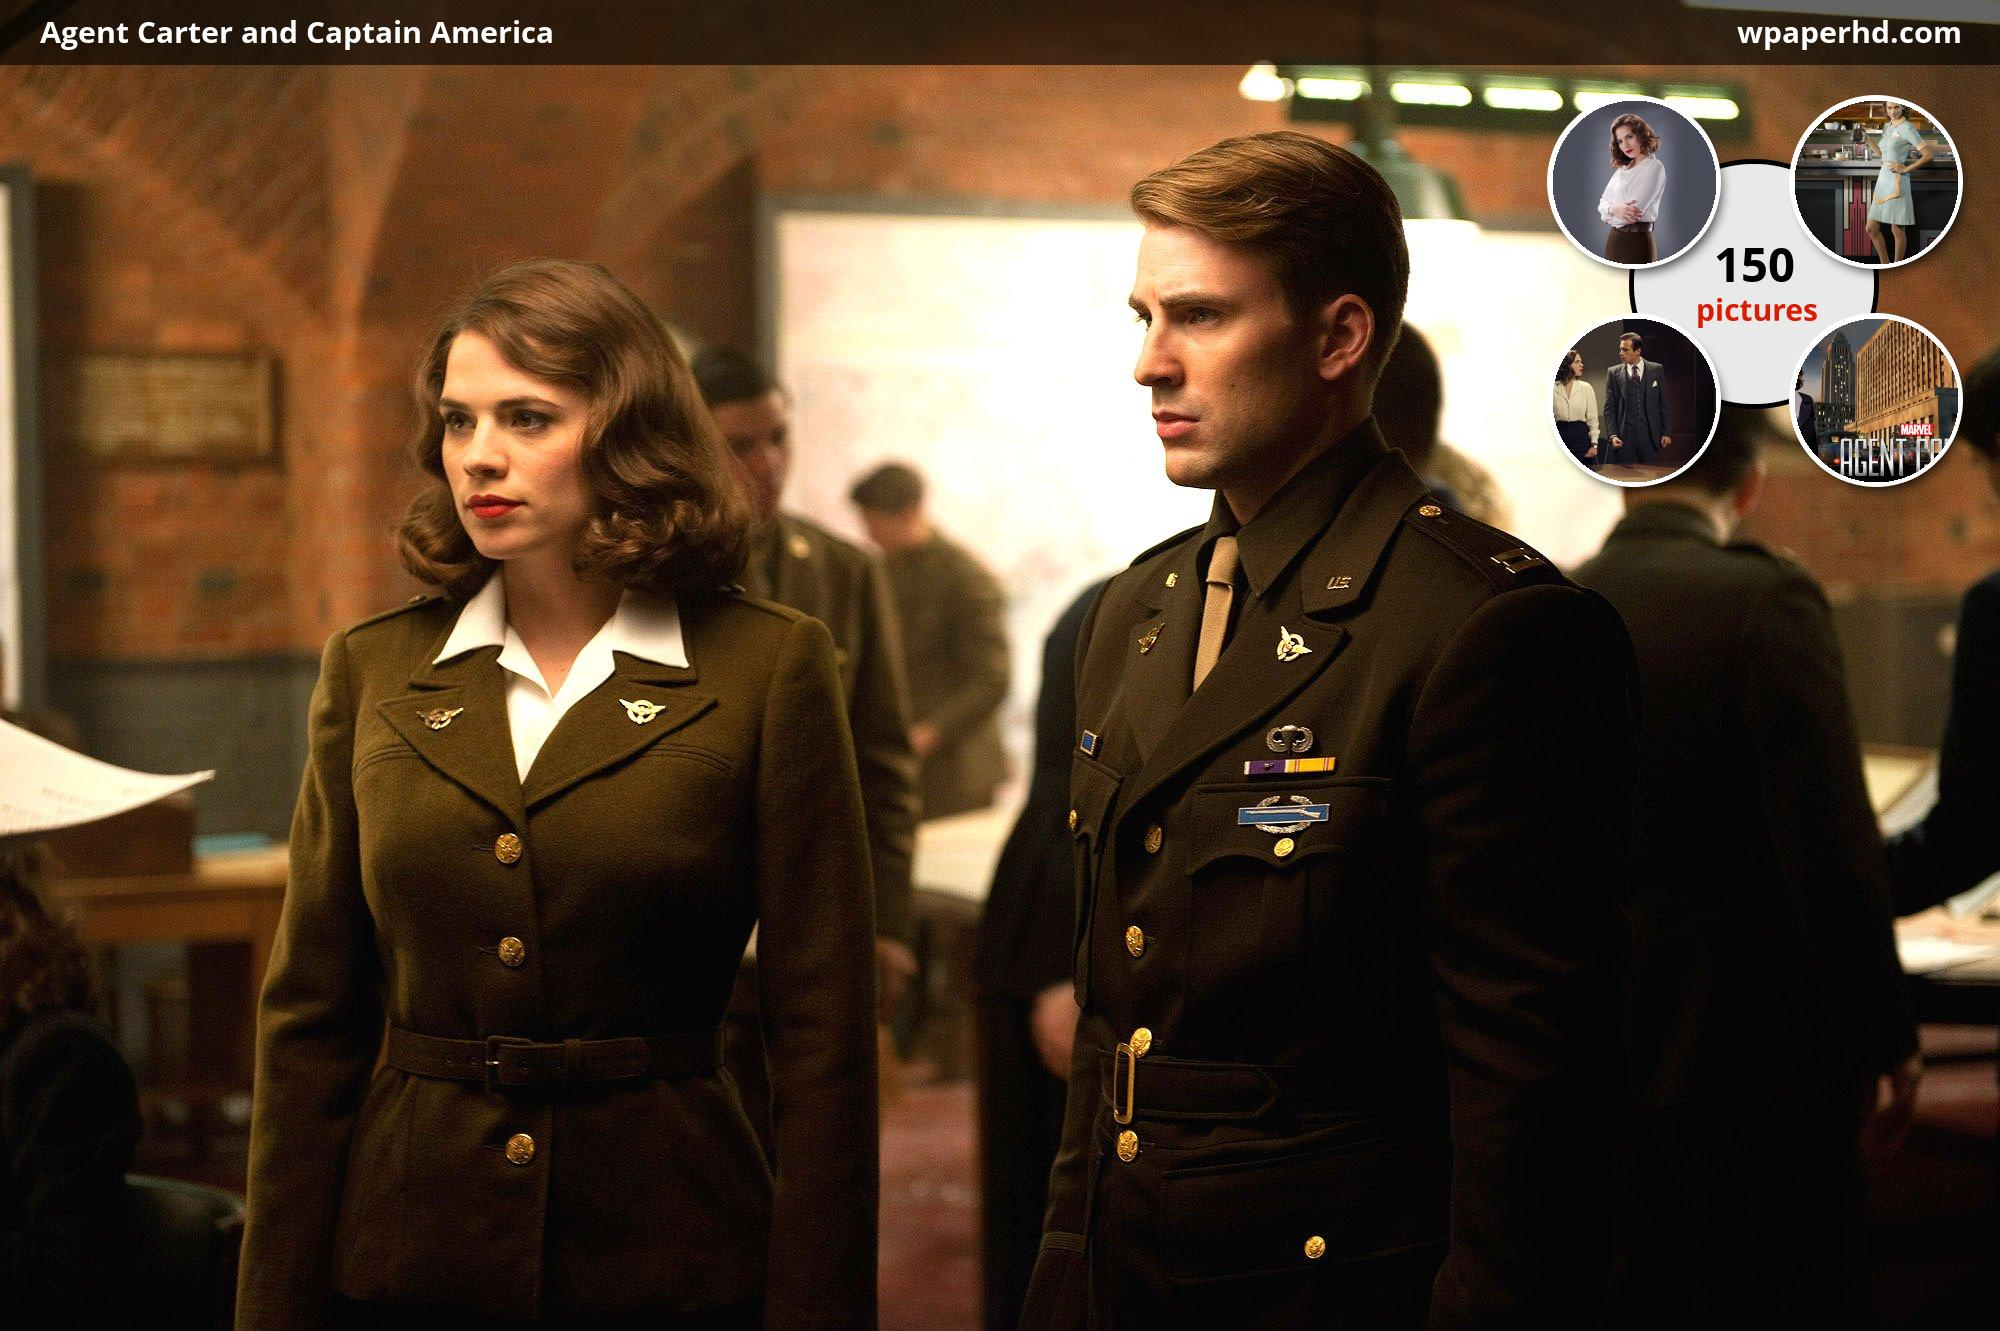 Agent Carter Wallpapers for Free Download, 47 Agent Carter High ...